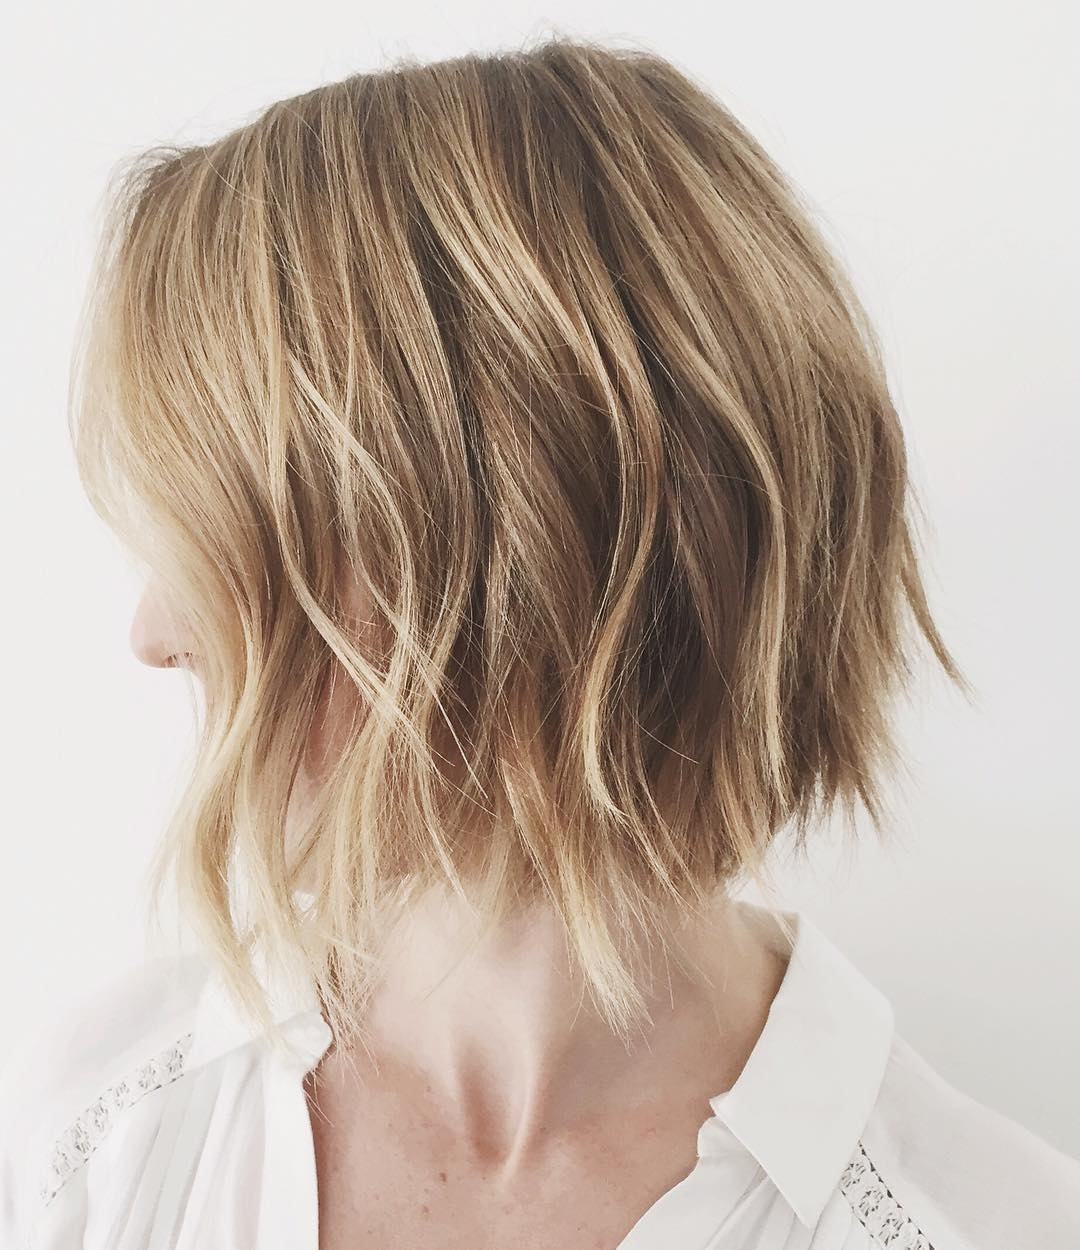 Best Short Bob Hairstyles Inspiration For Teens 2018 for Short Haircuts 2018 Teenage Girl